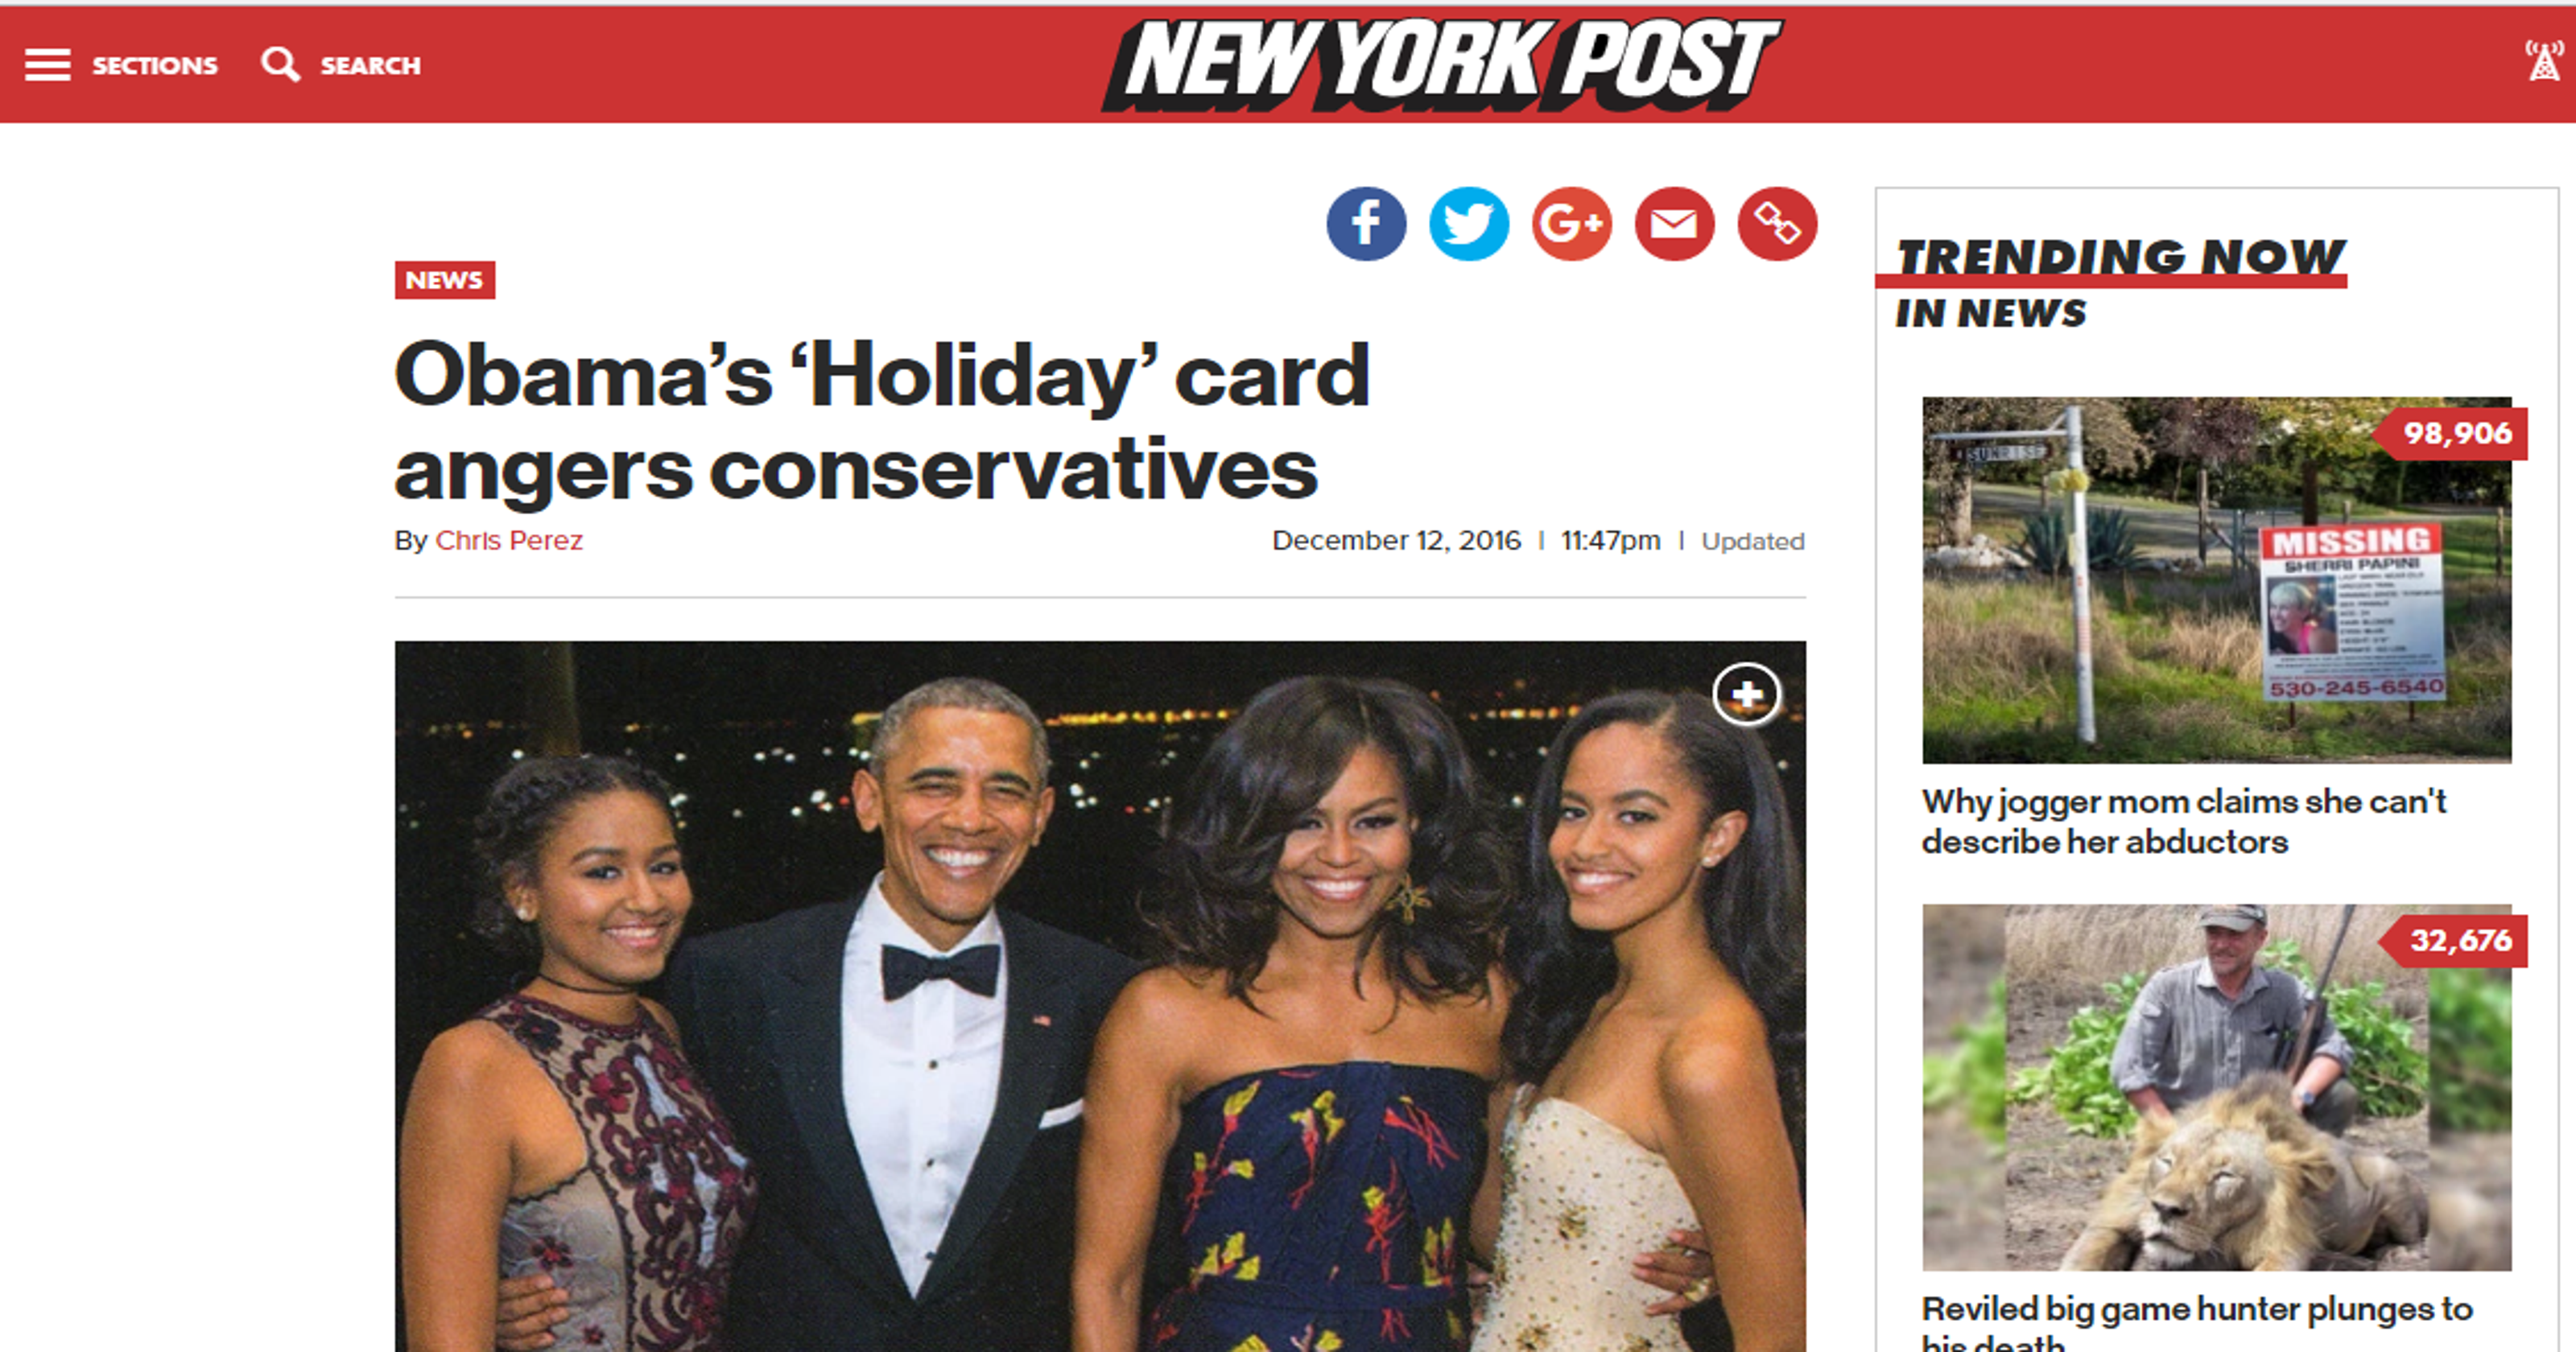 Fact Check: Do the Obamas say \'merry Christmas\' on their holiday cards?